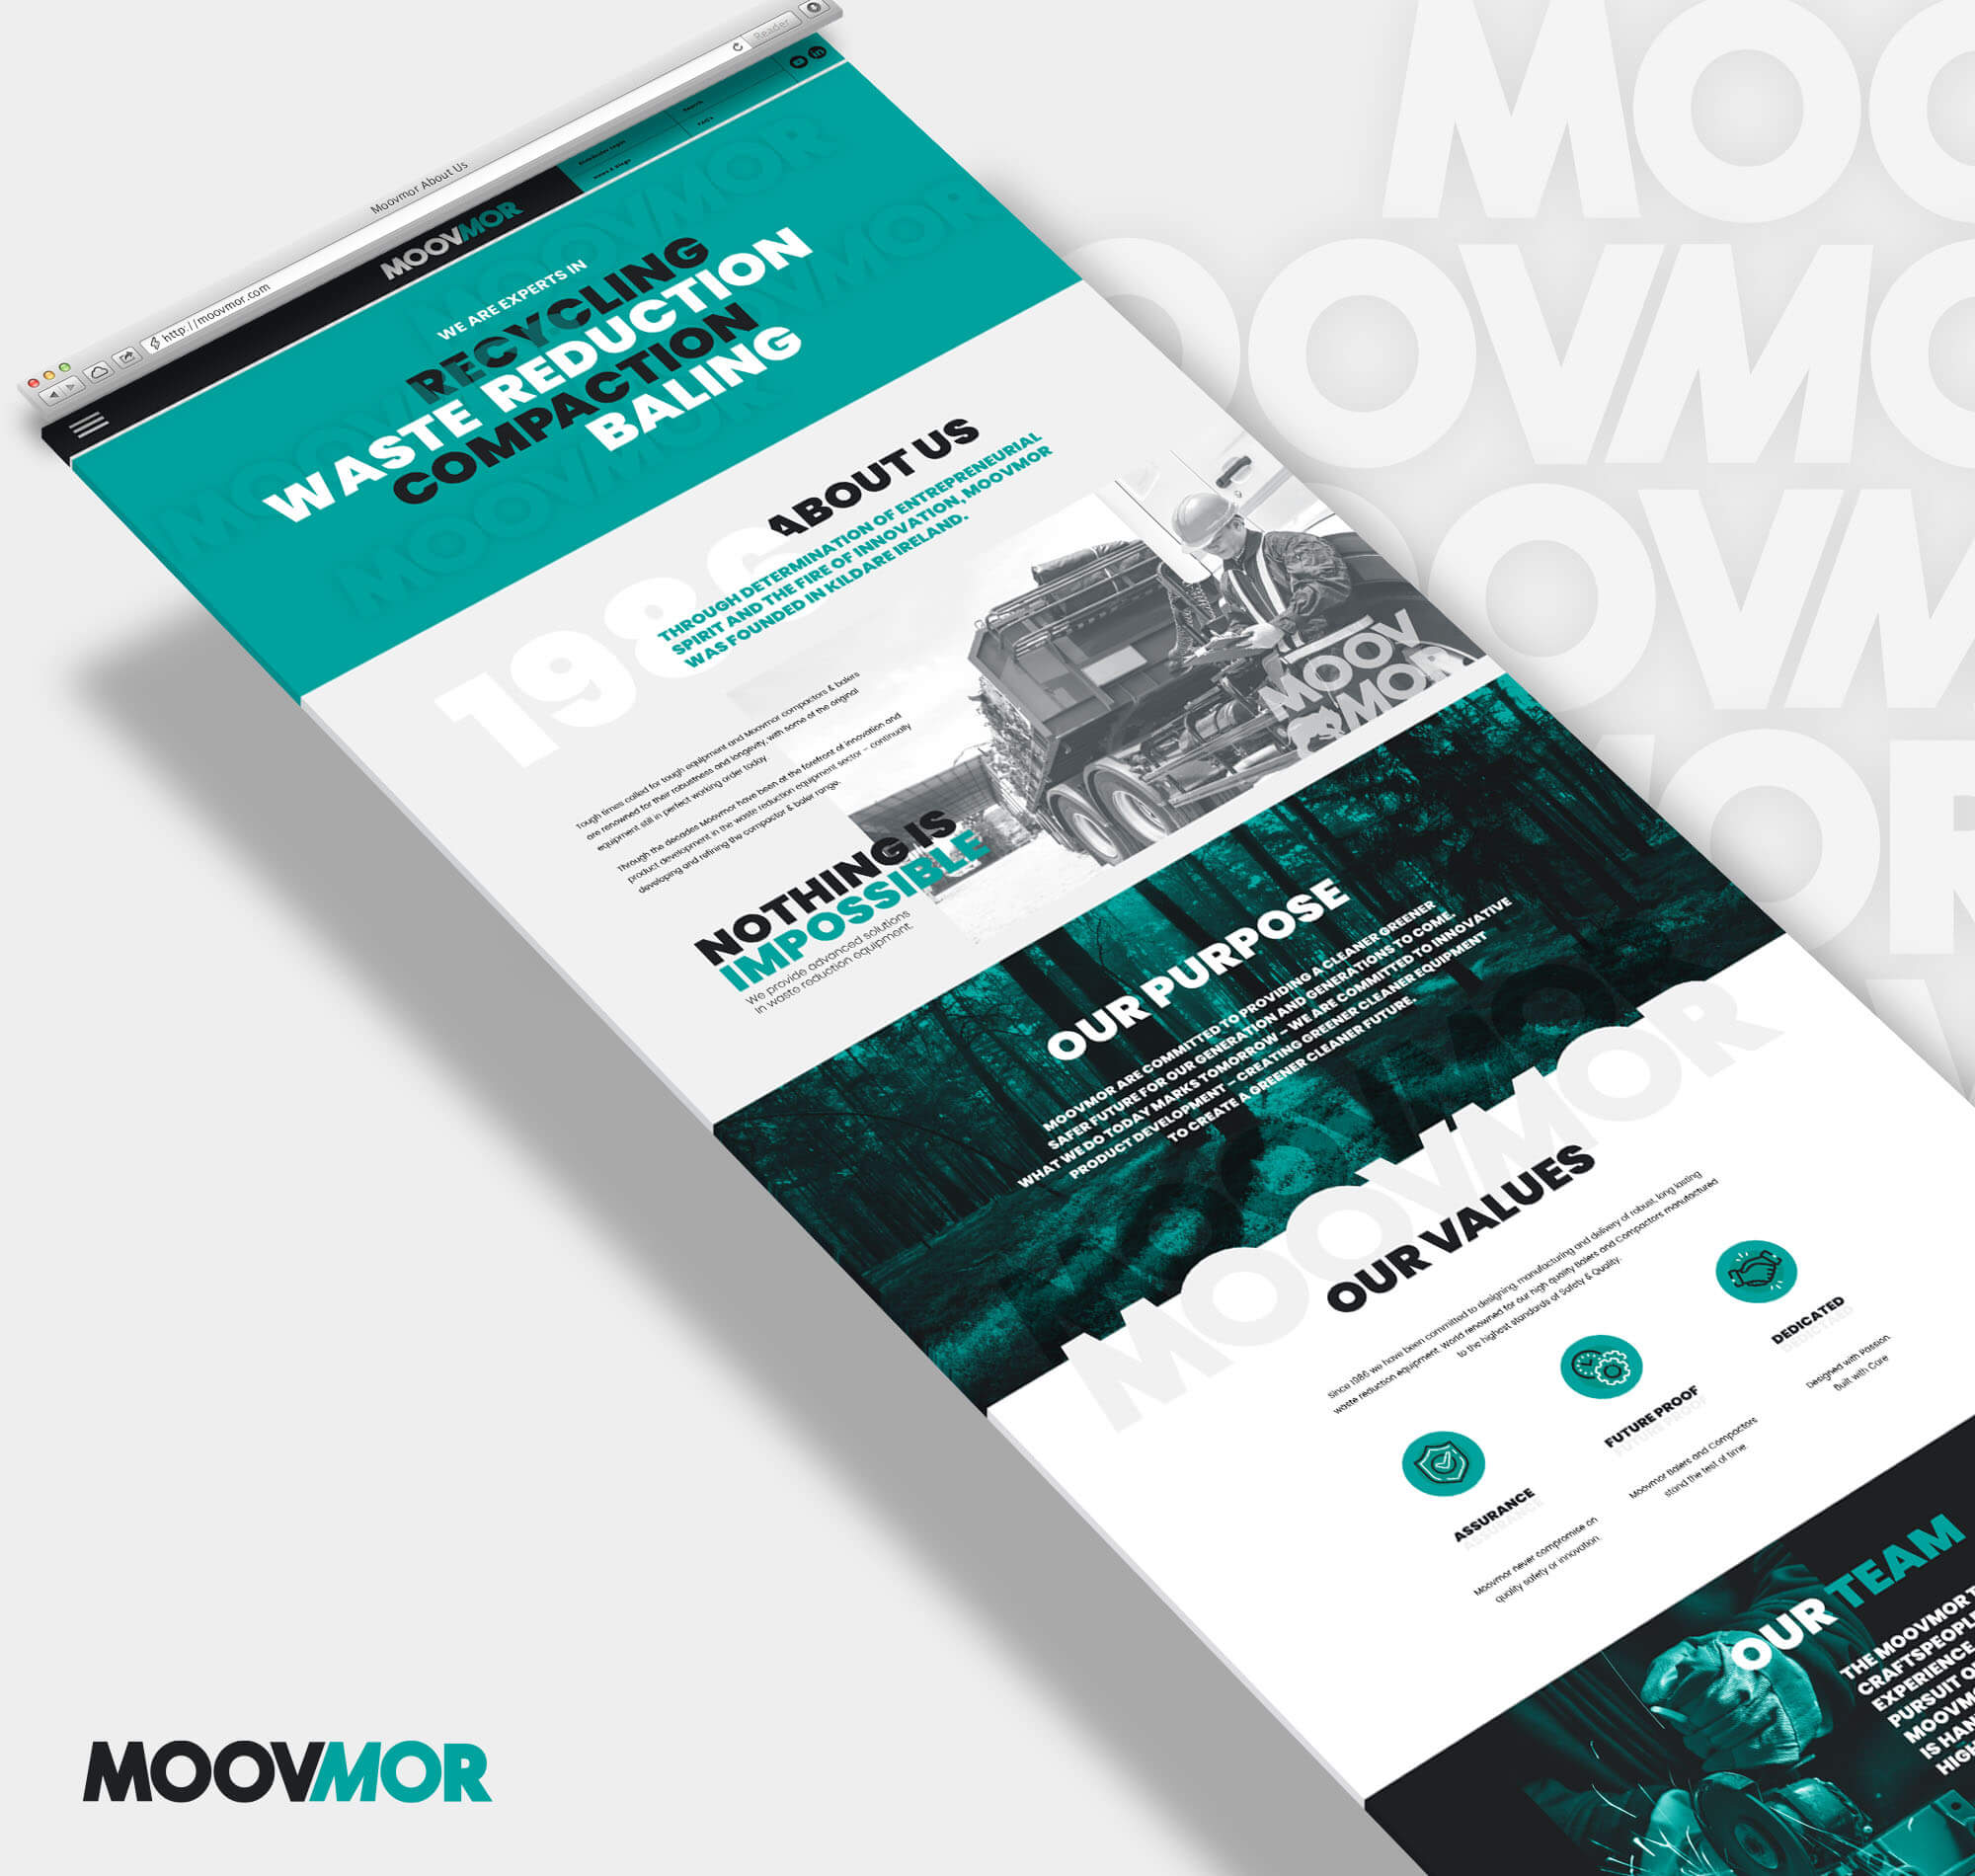 Website desgin mockup for Moovmor